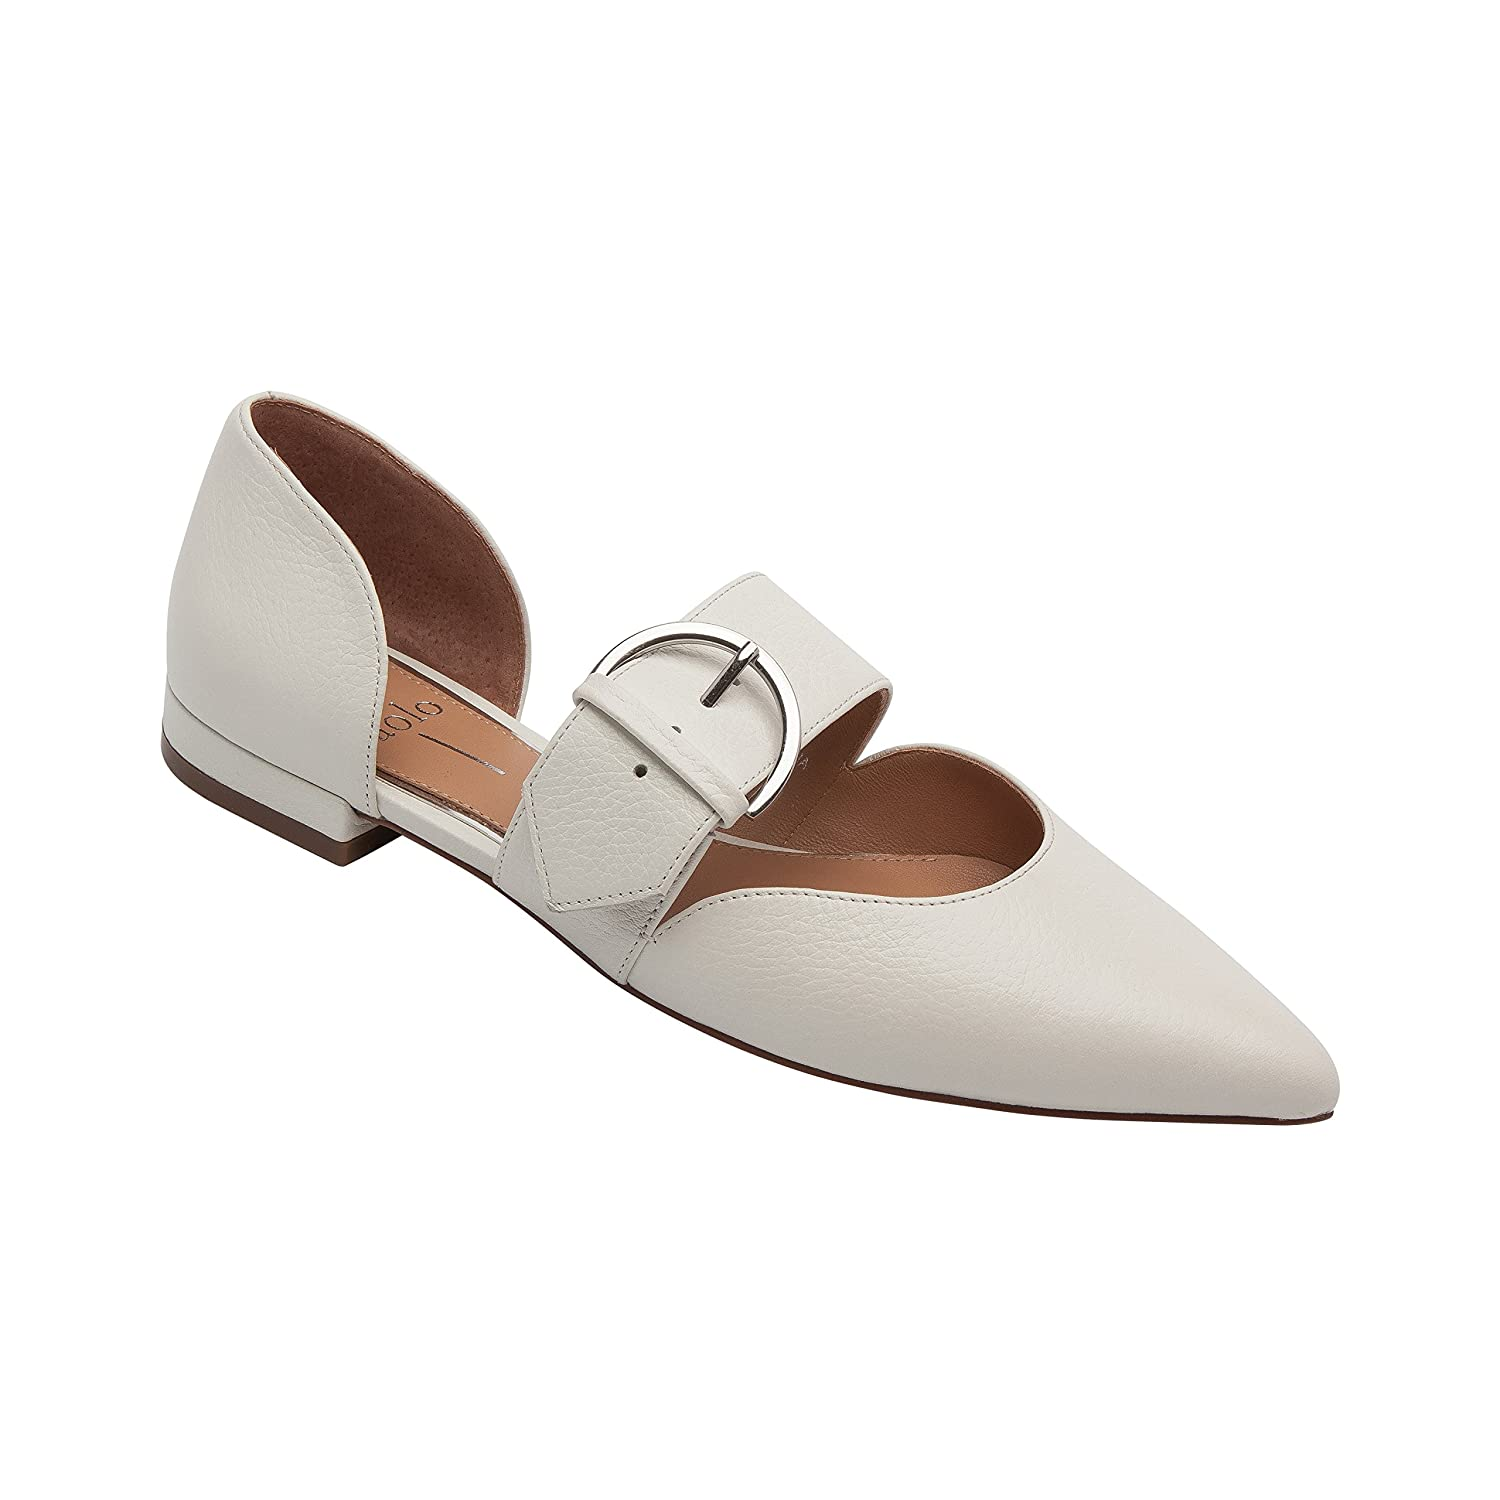 Dean | Women's Two Piece Pointy Suede Toe Comfortable Leather or Suede Pointy Ballet Flat B07957Q6N6 7.5 M US|Ivory Leather 20f040